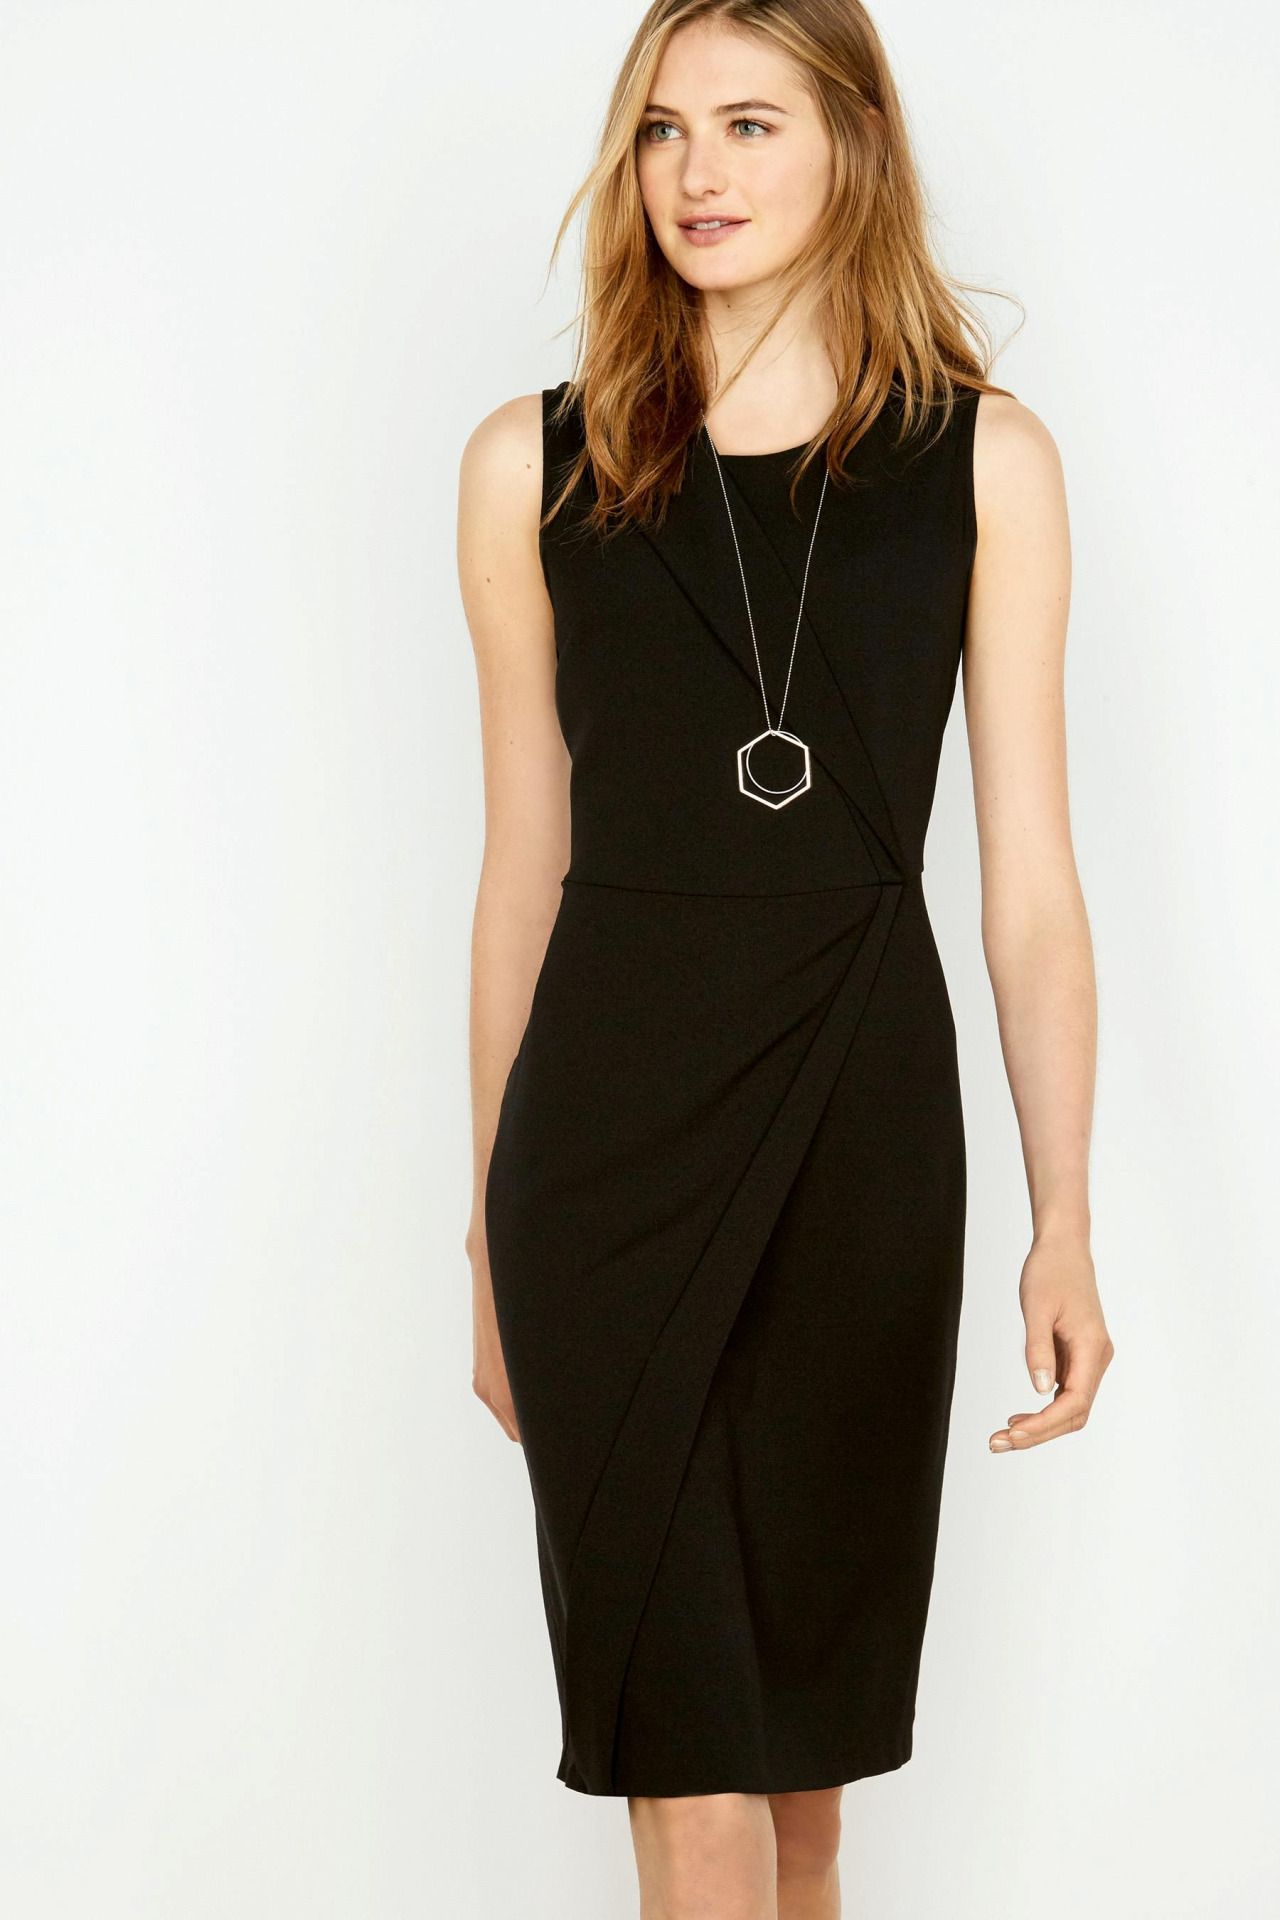 Black dress next - Explore Buy Dresses Online Next Dresses And More